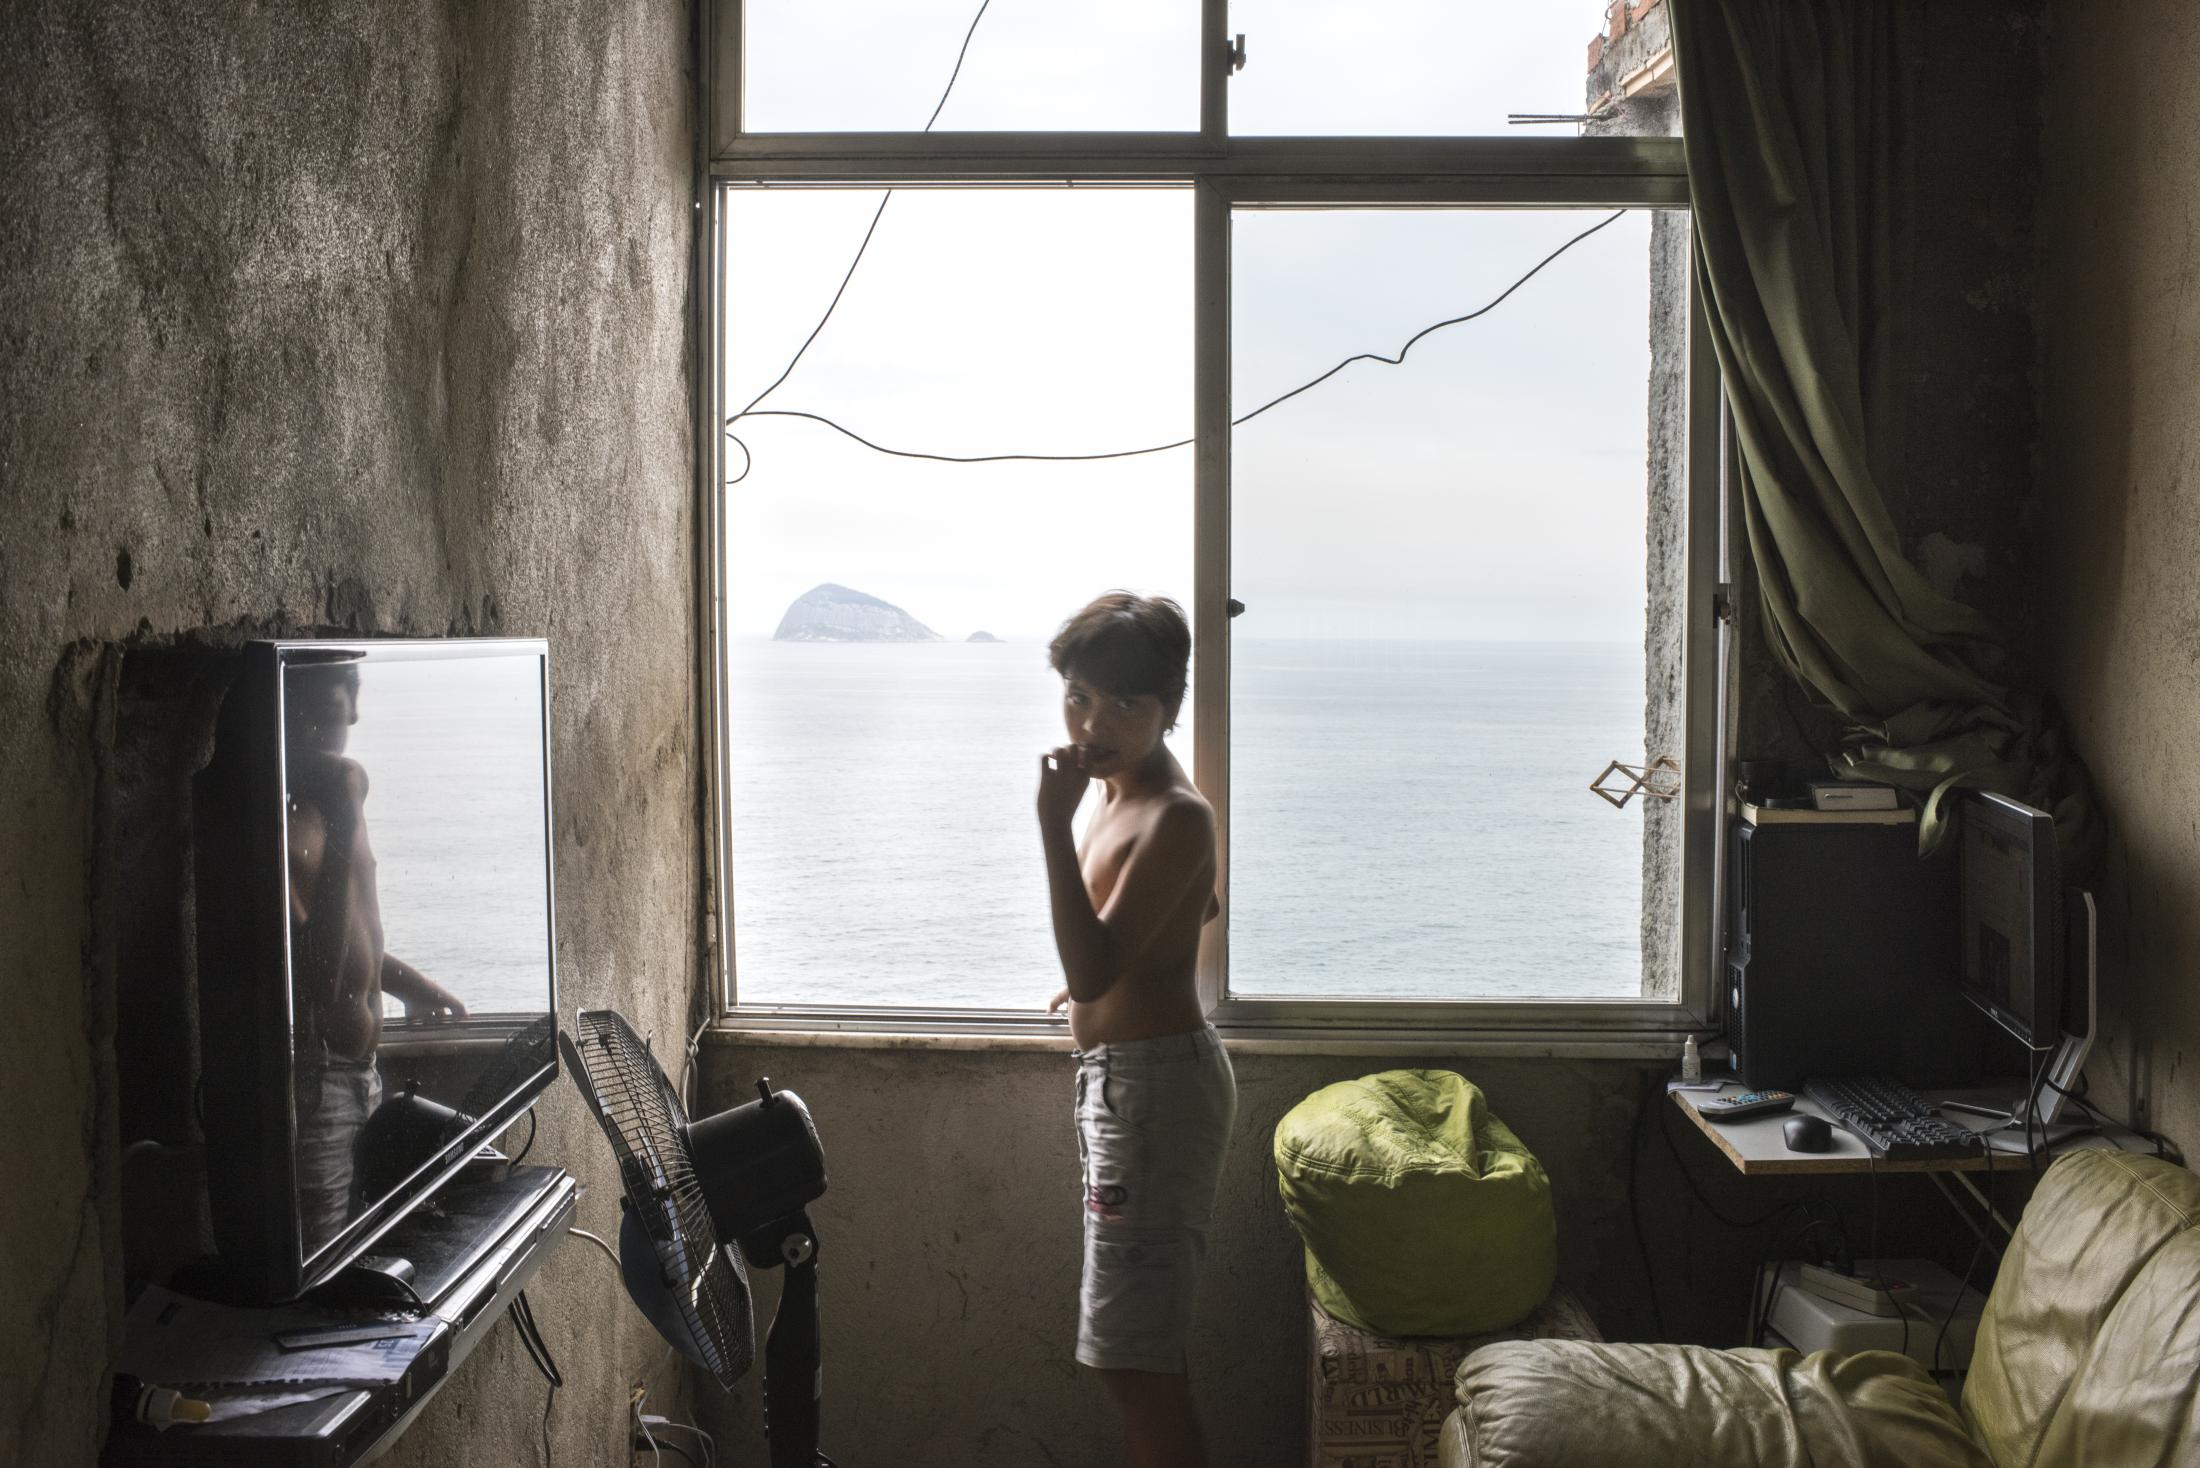 The son of Walmar Luiz, a community organizer in Vidigal who also works as a location scout for film productions, in the living room of their home overlooking the ocean